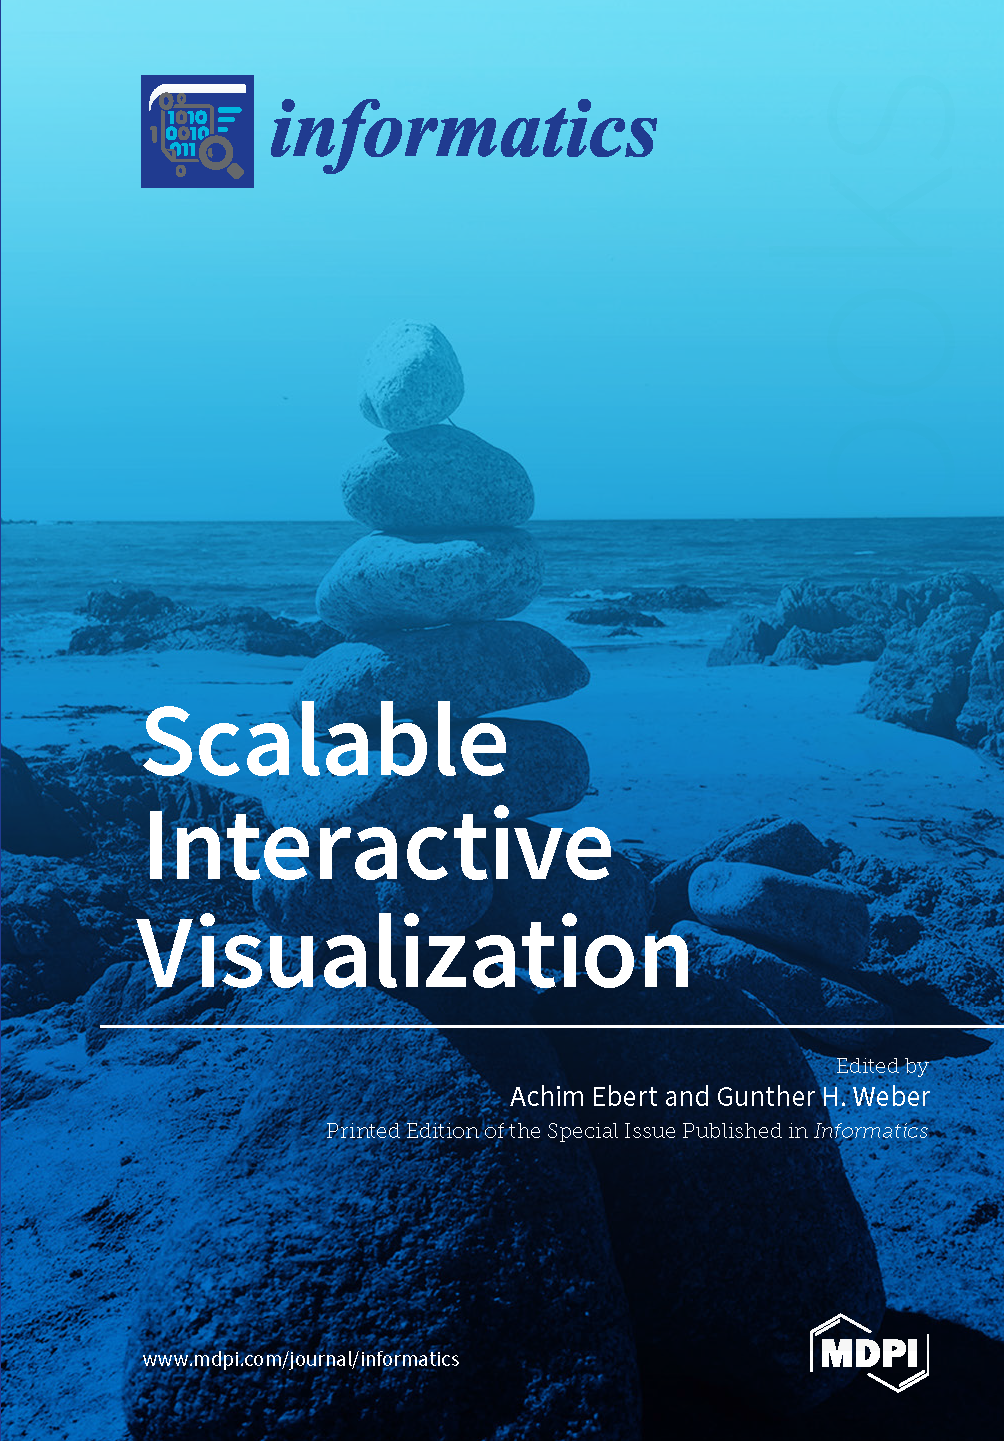 Scalable Interactive Visualization